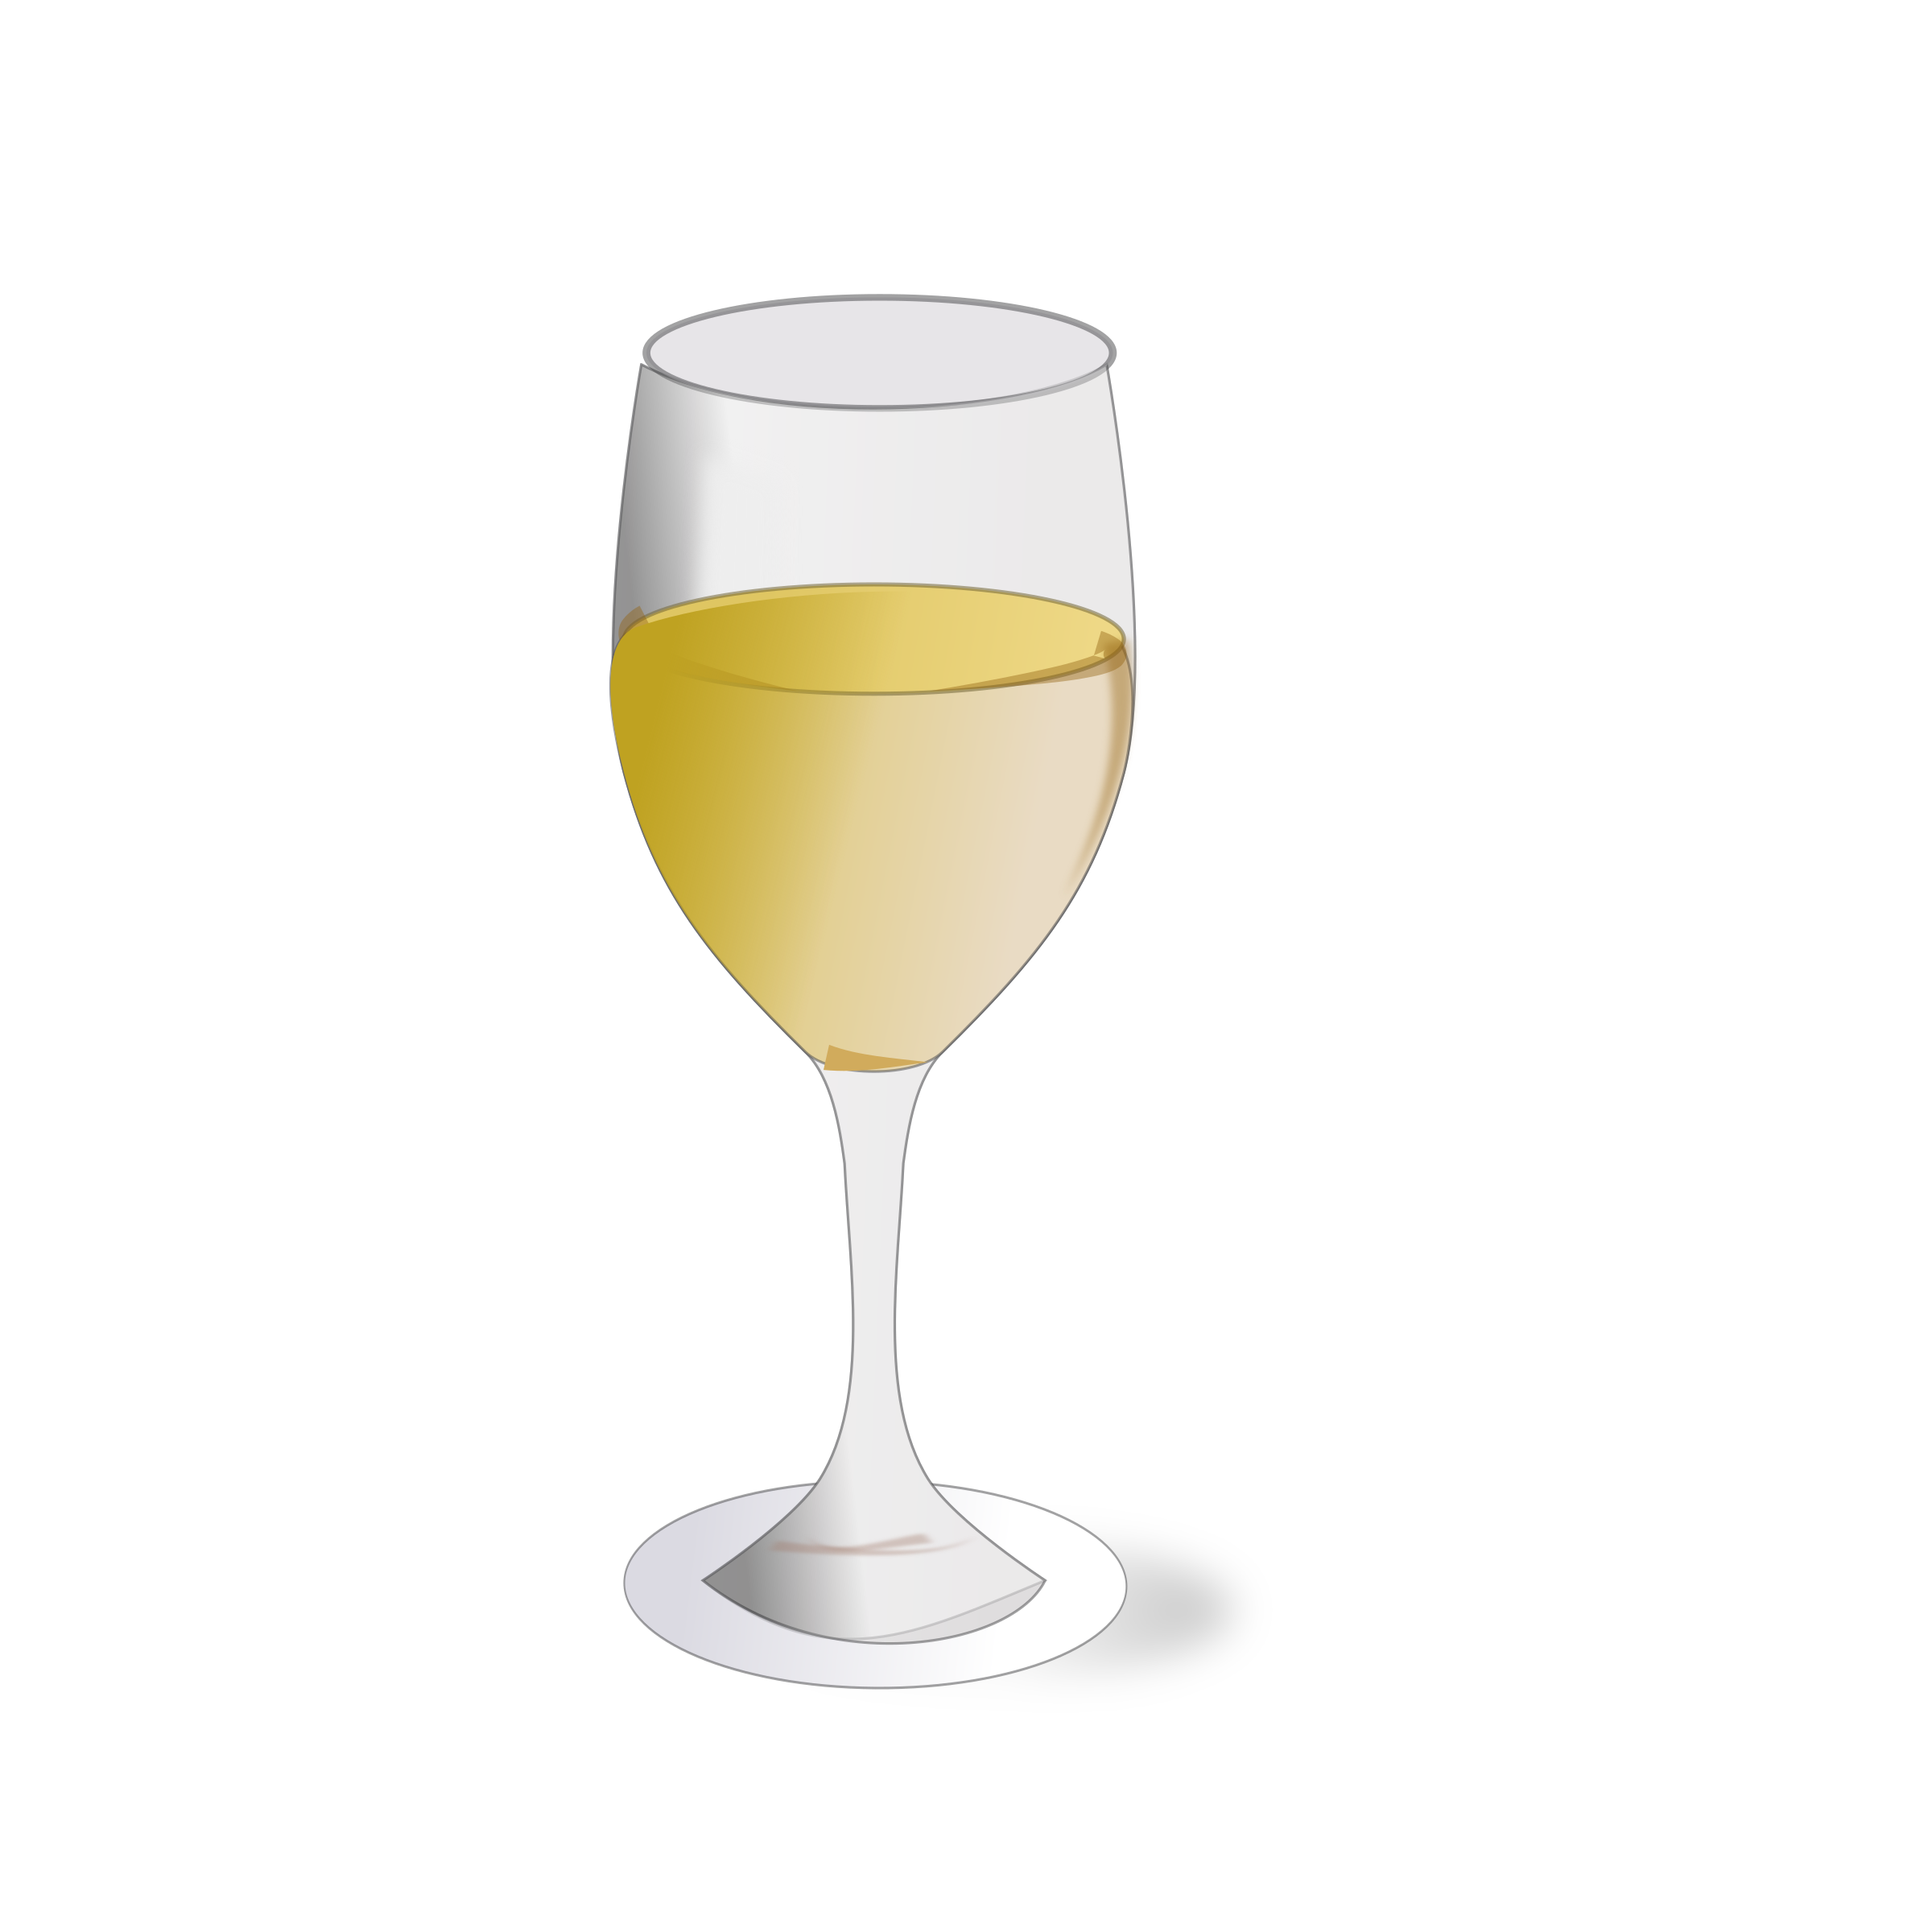 Wine glass by netalloy